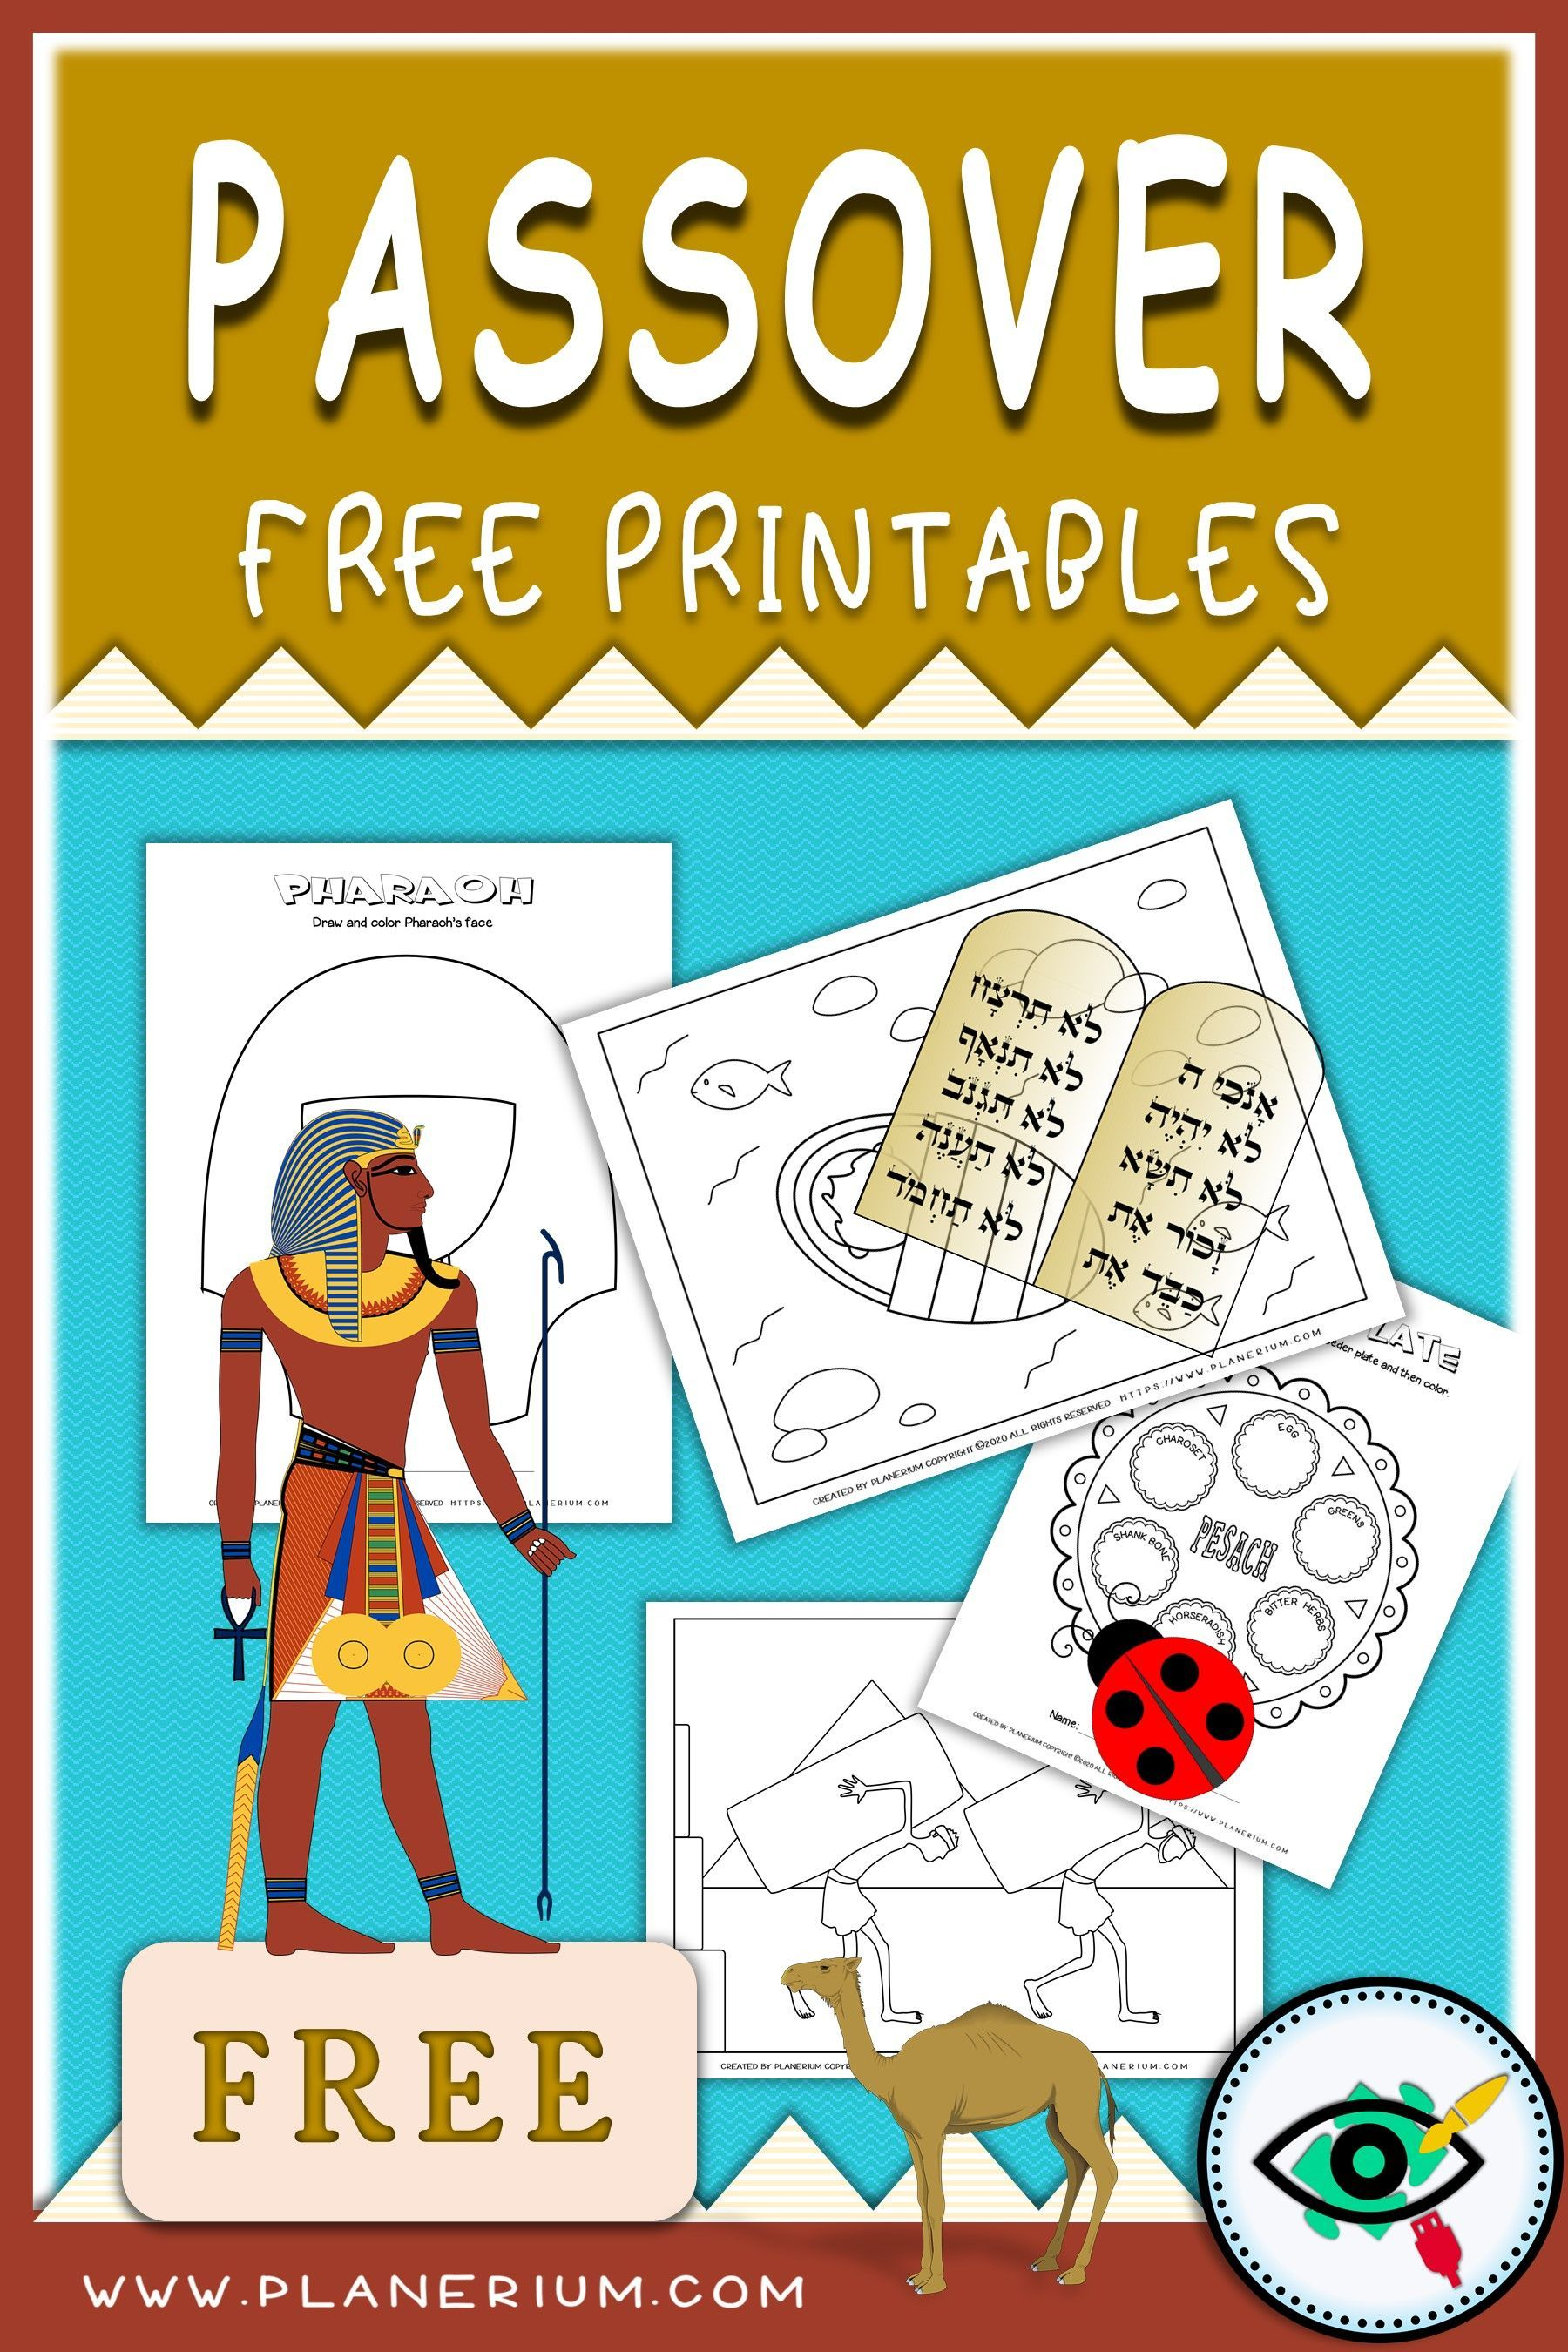 Passover Kids Free Printables In